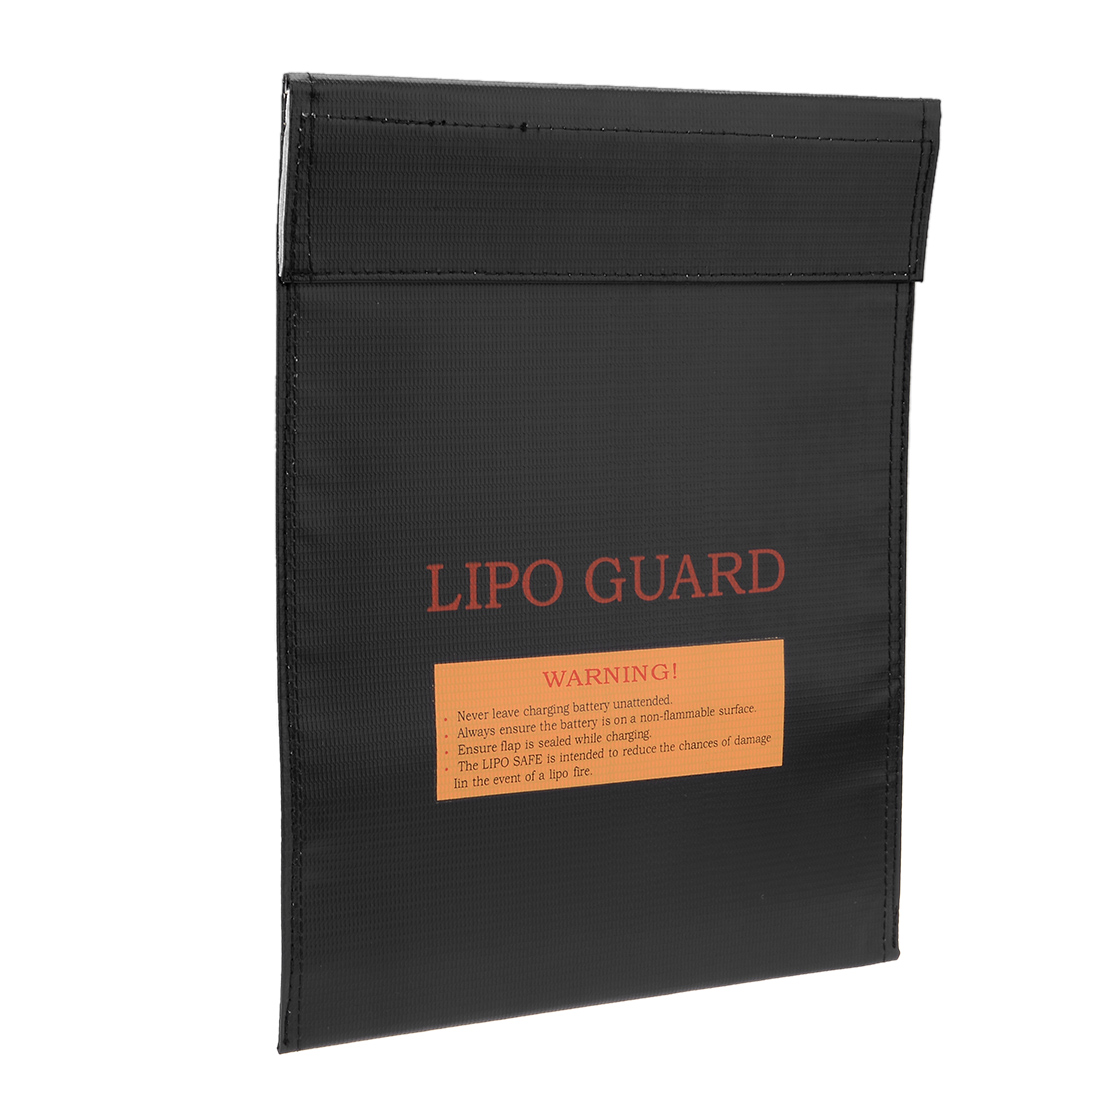 Lipo Battery Fireproof Bag Storage Guard Safe Charging Holder 23cm x 30cm Black